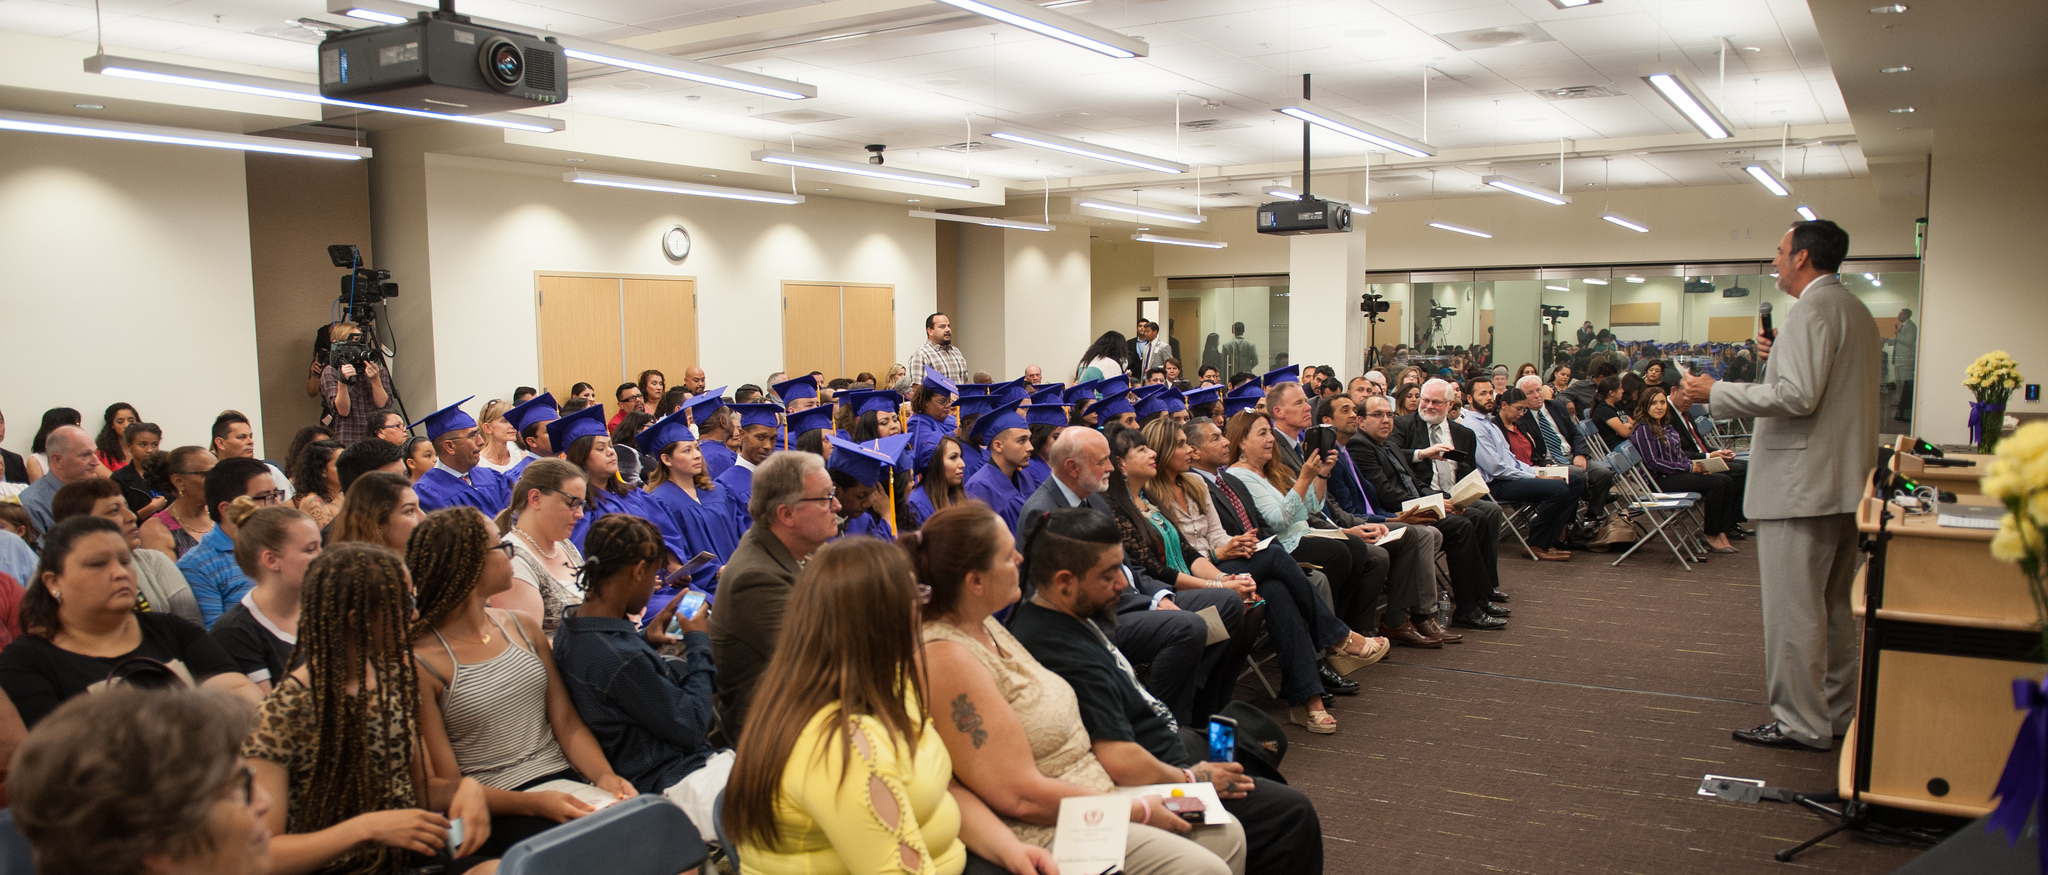 The pioneering first students of San Manuel Gateway College prepare to graduate on June 7, 2017.Photo provided by Loma Linda University Health